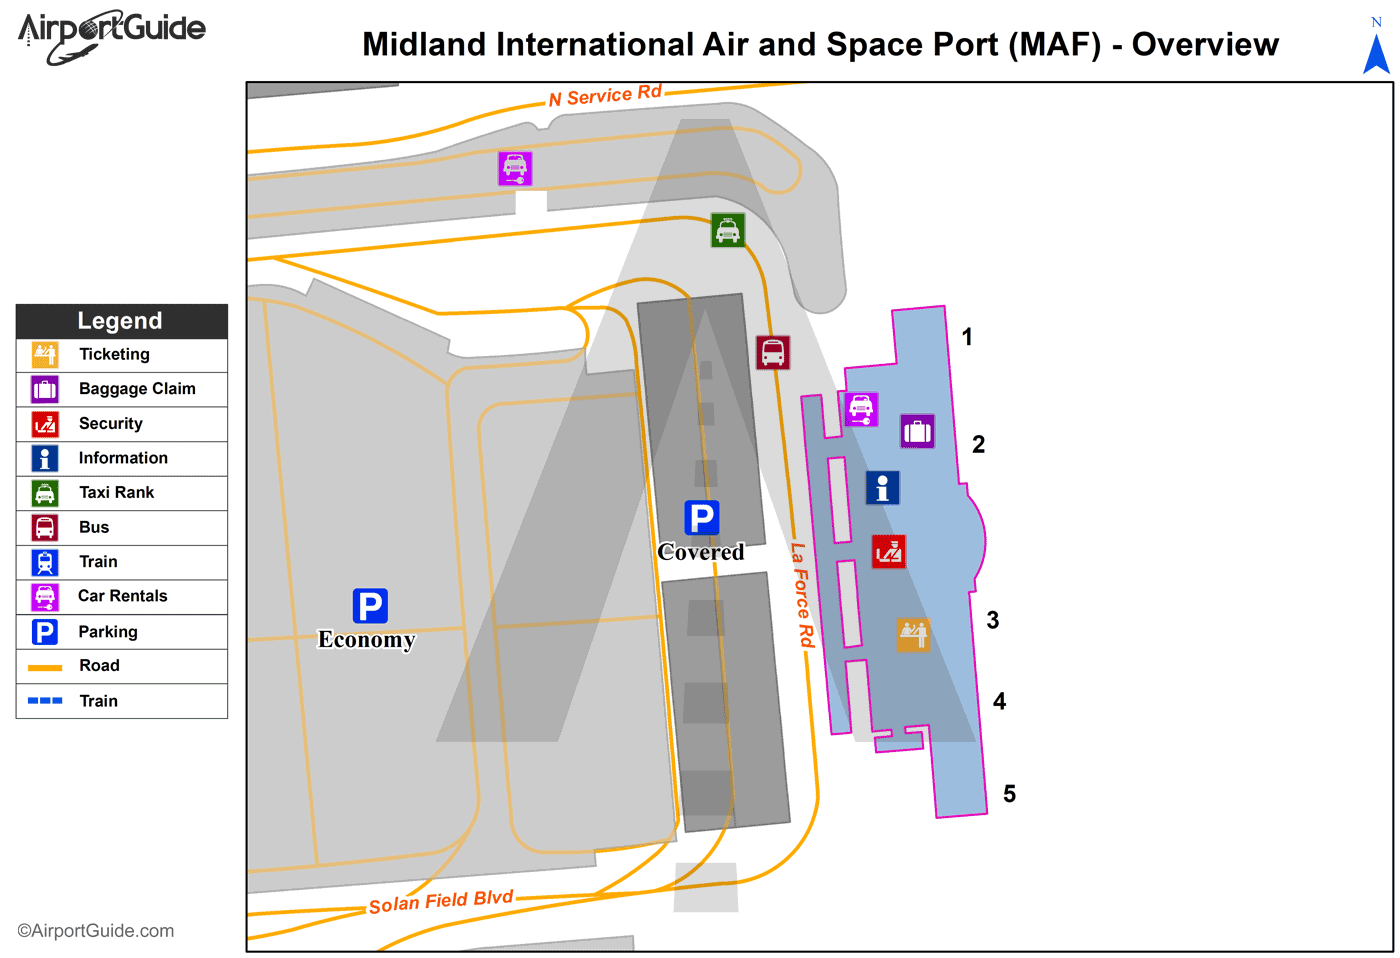 Midland - Midland International Air And Space Port (MAF) Airport Terminal Map - Overview